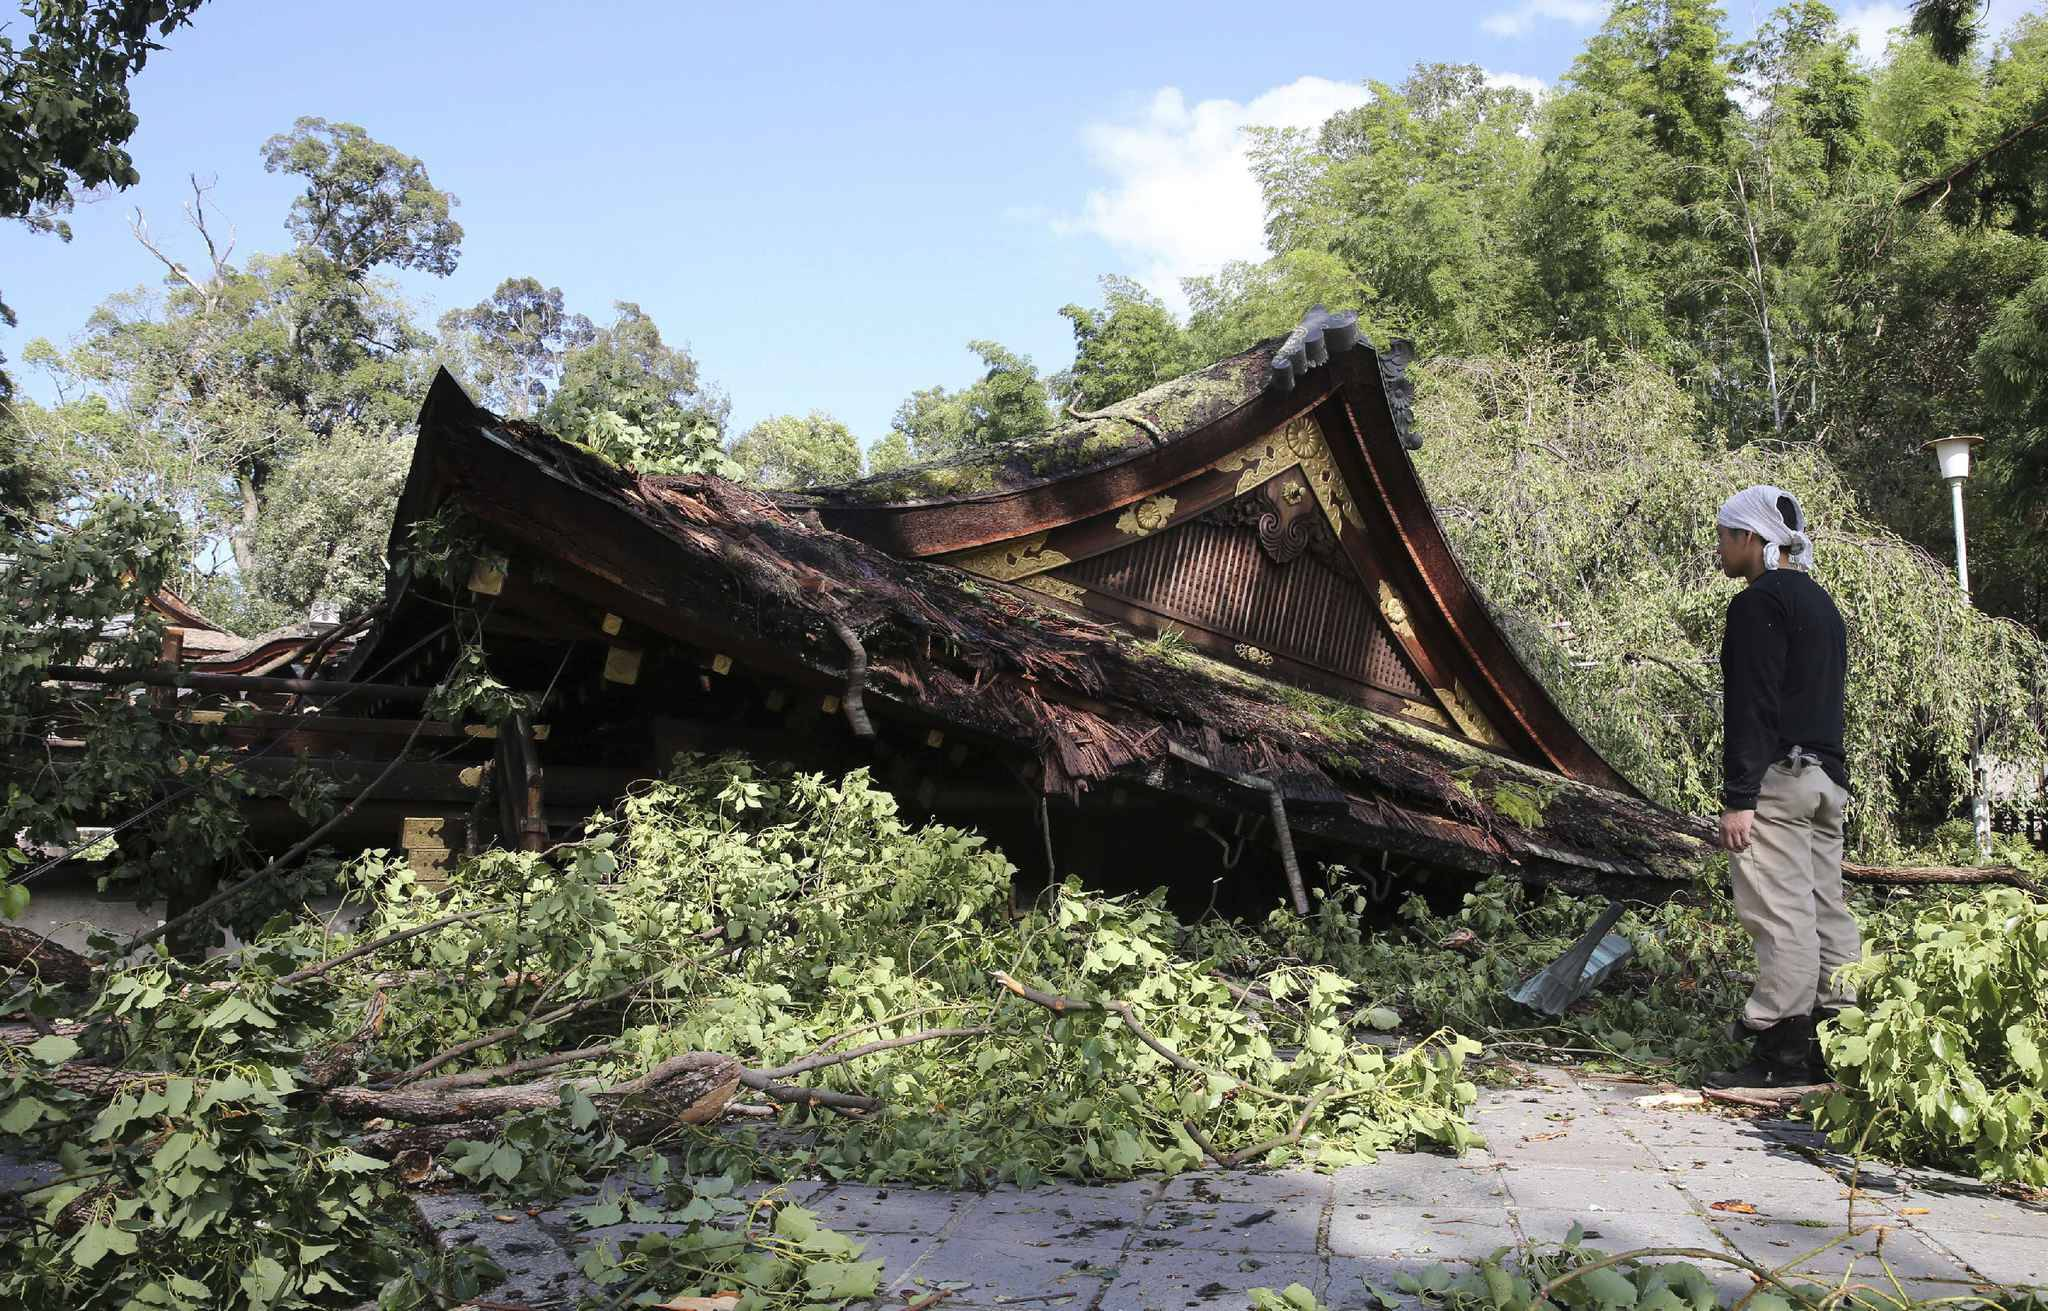 A picture shows a building of Hirano Jinja Shrine damaged by the typhoon Jebi in Kyoto City, Kyoto Prefecture on Sep.5, 2018. Life-threatening typhoon Jebi made a landfall on Tokushima Prefecture and crossed Shikoku and Kinki region, then proceeded to the Sea of Japan on the previous day. 7 people were killed and 1 is missing as of 4th night.